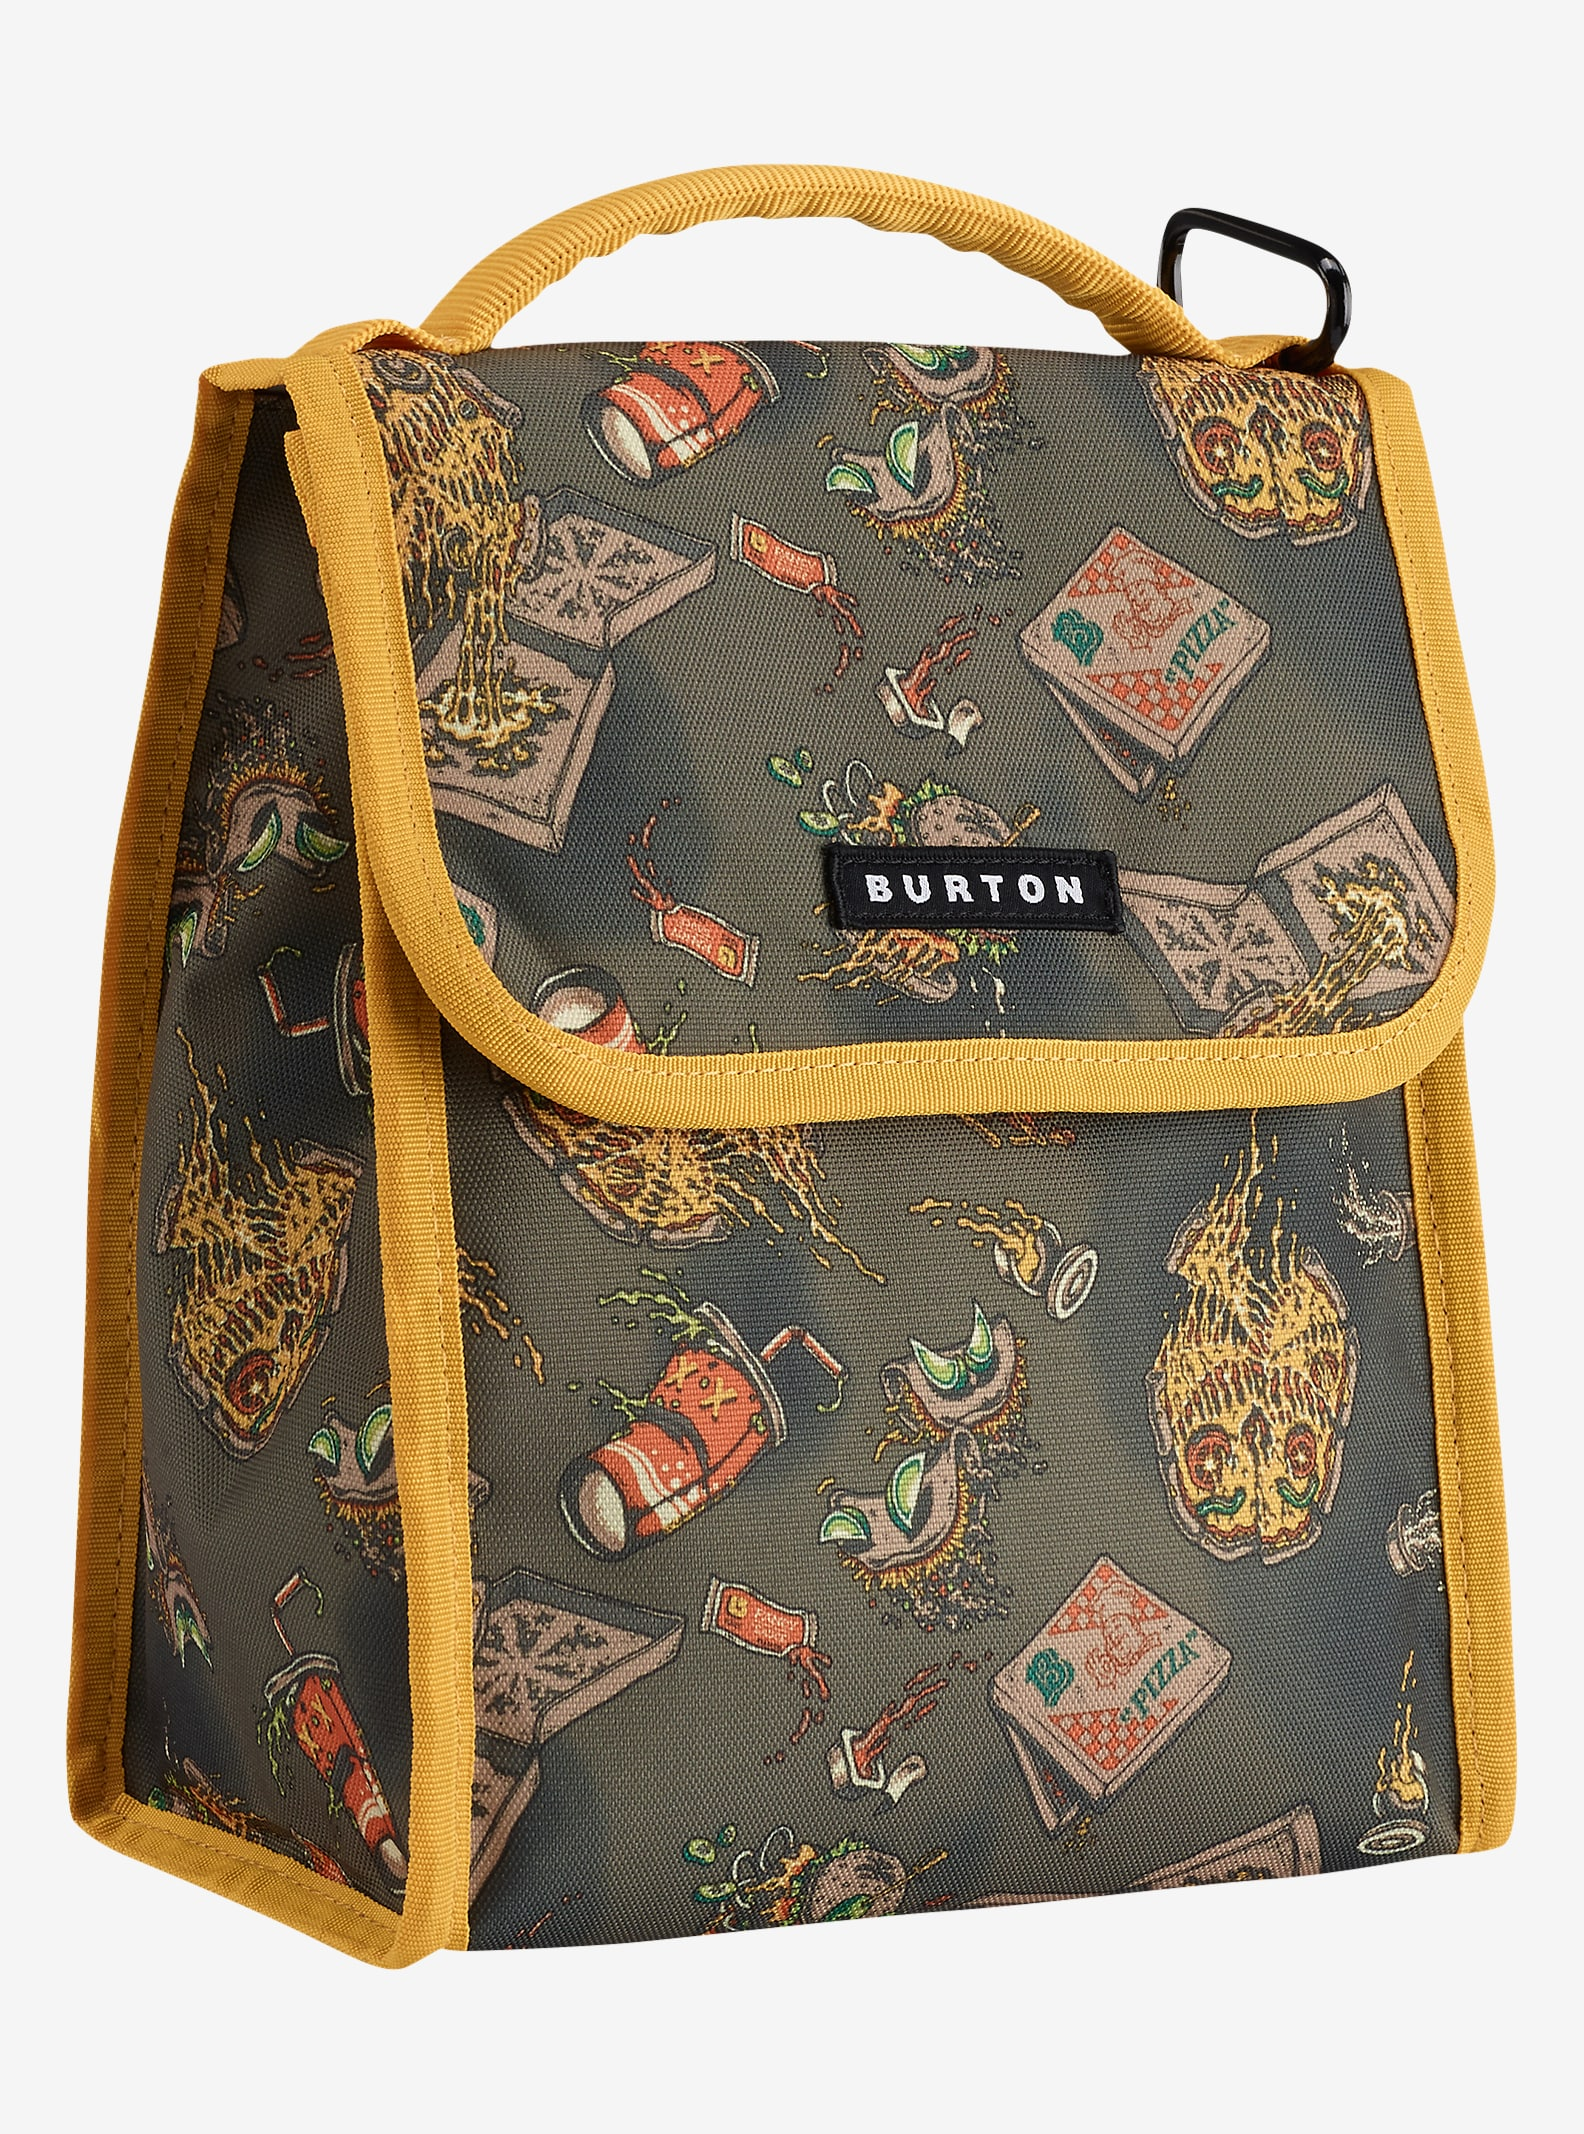 Burton Lunch Sack shown in Junk Food Print